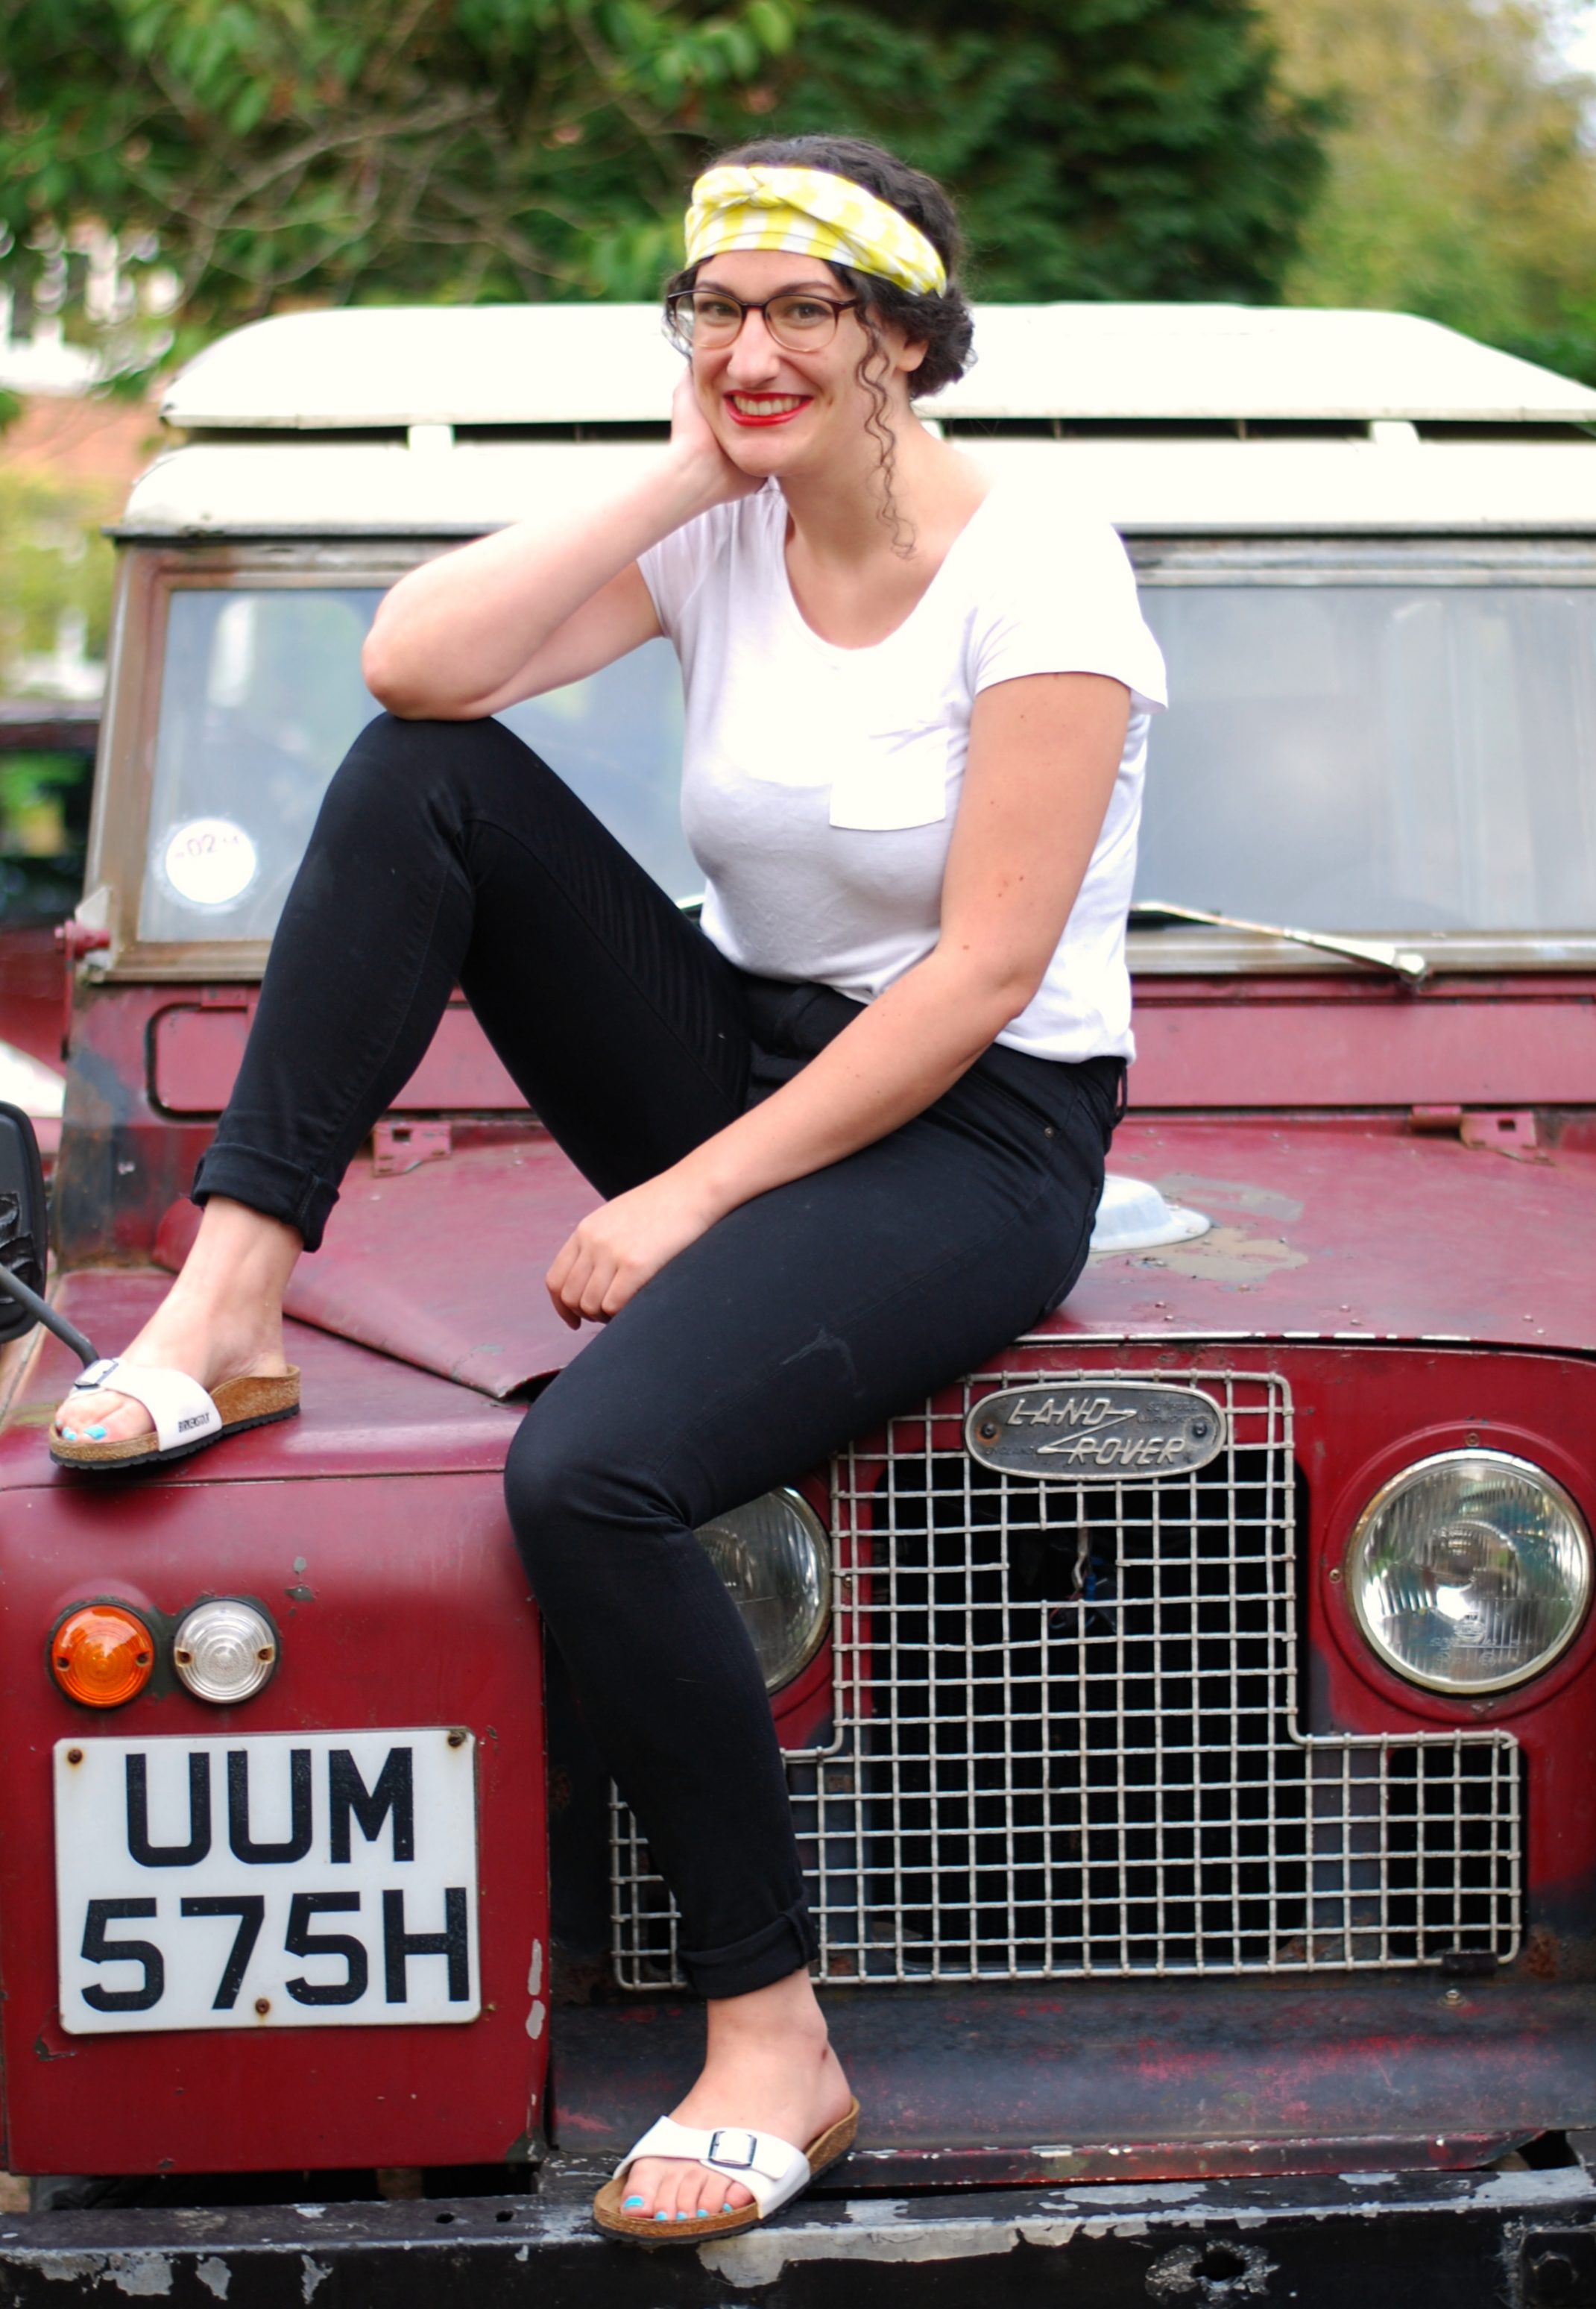 chambray and curls girl curly hair series 2a landrover classic car